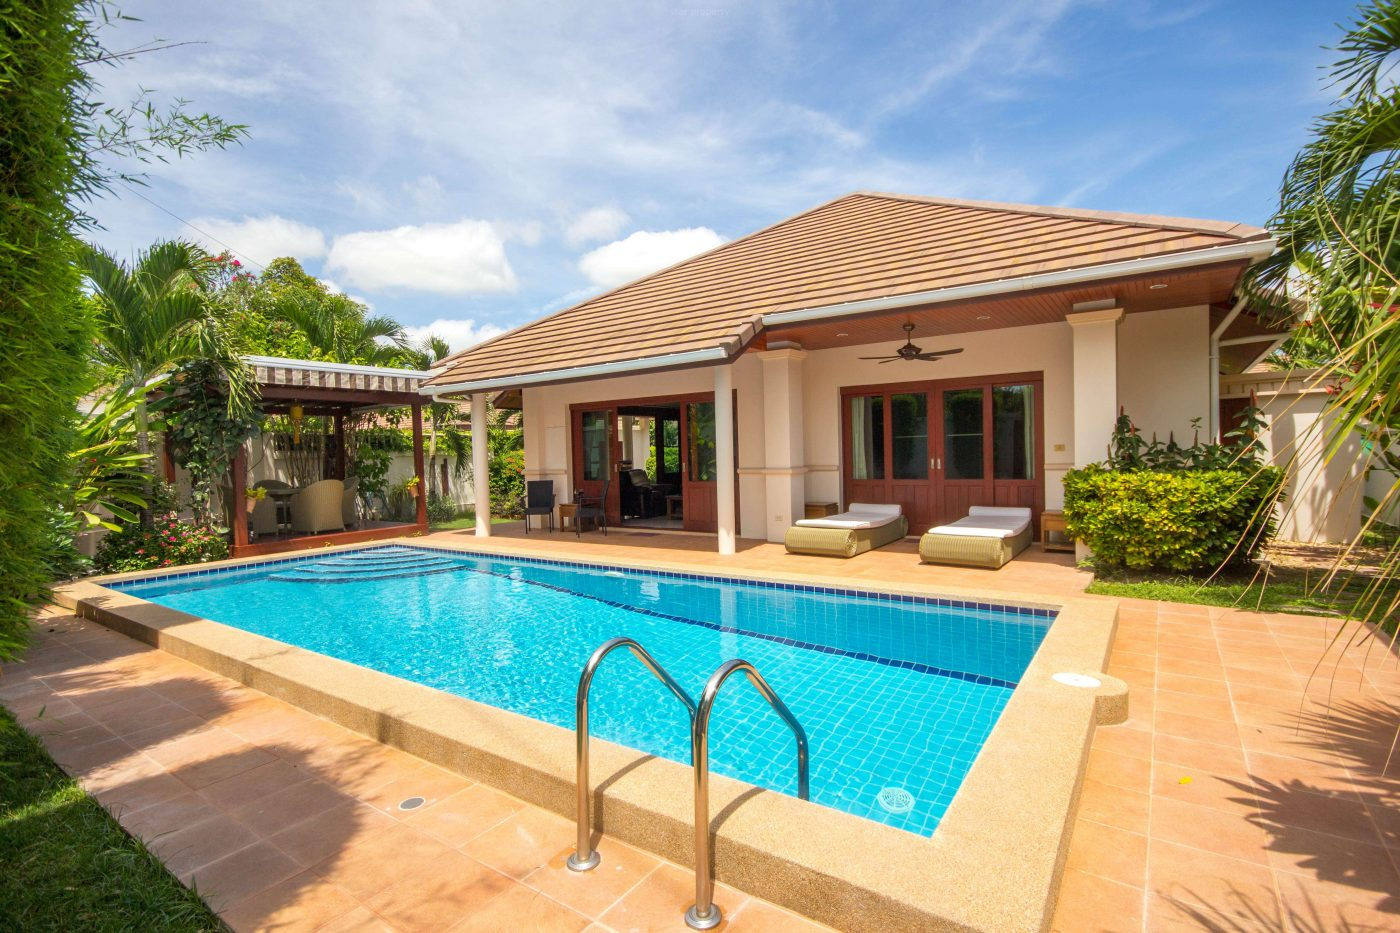 Pool Villa for Rent at Hillside Hamlet